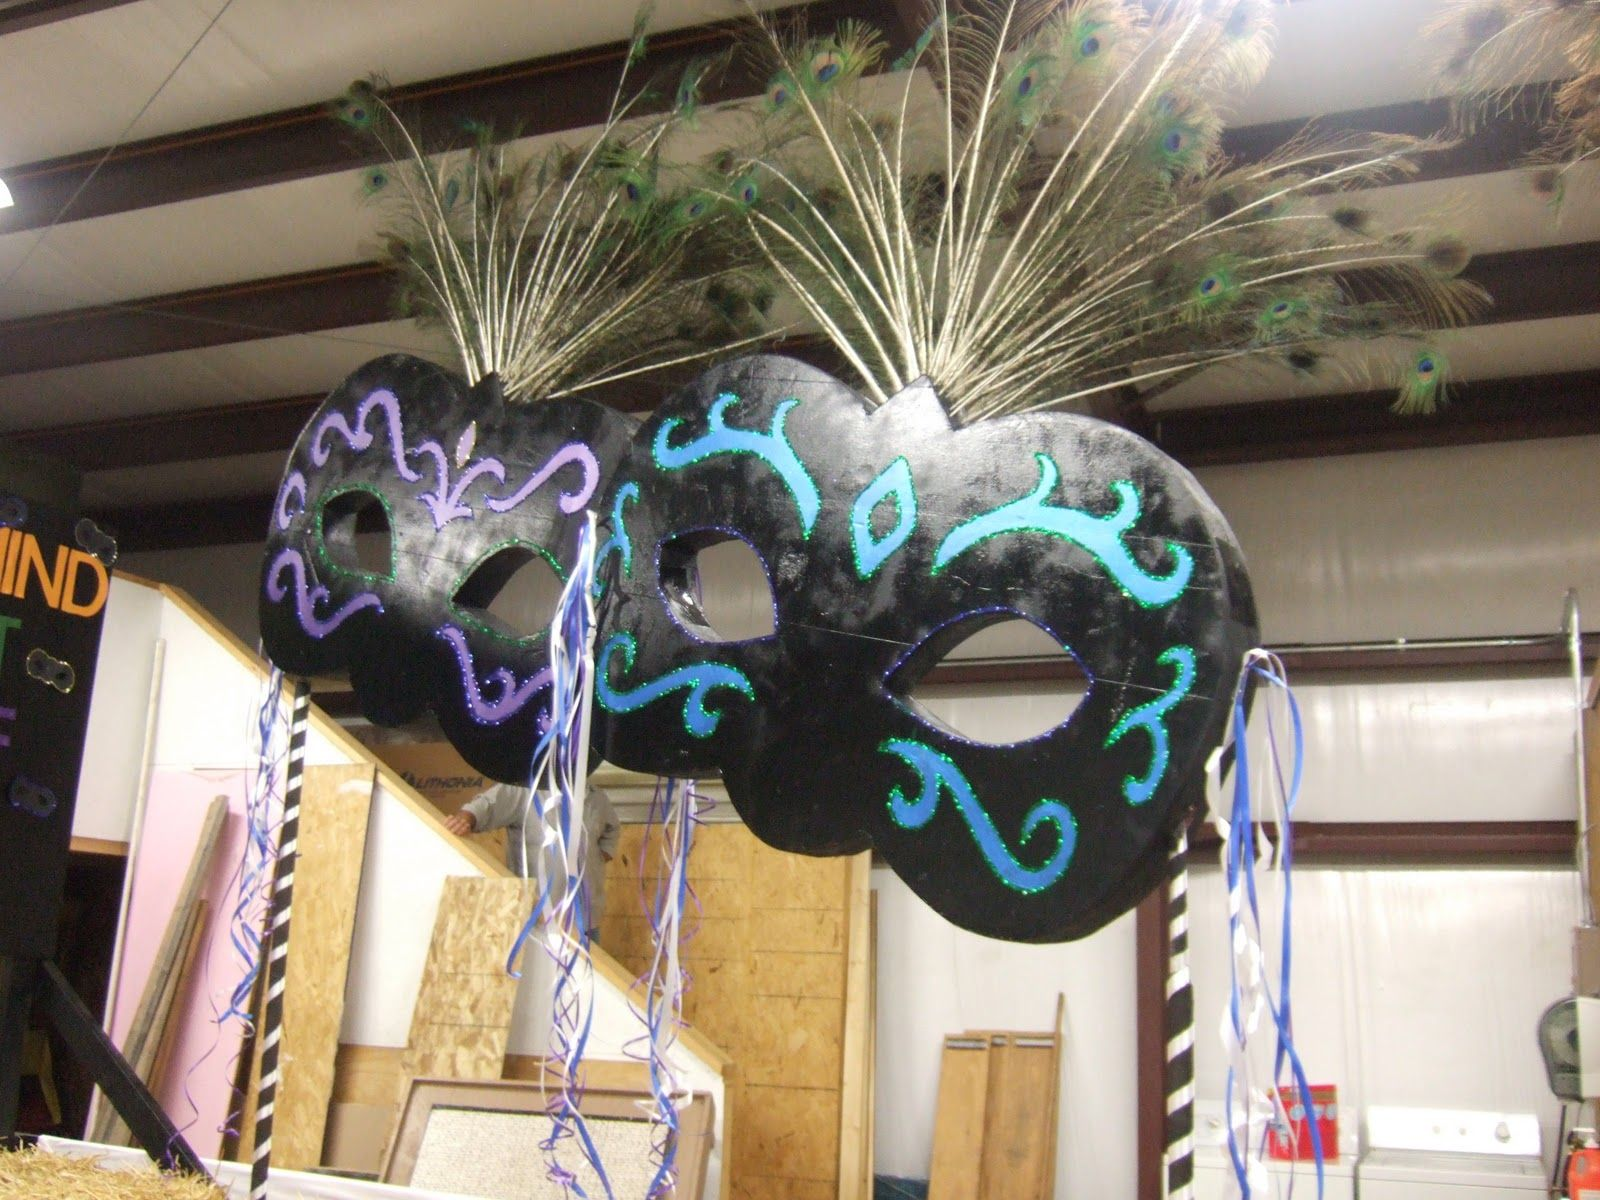 Masquerade decorations you make yourself - How To Make Giant Display Masks Out Of Foam